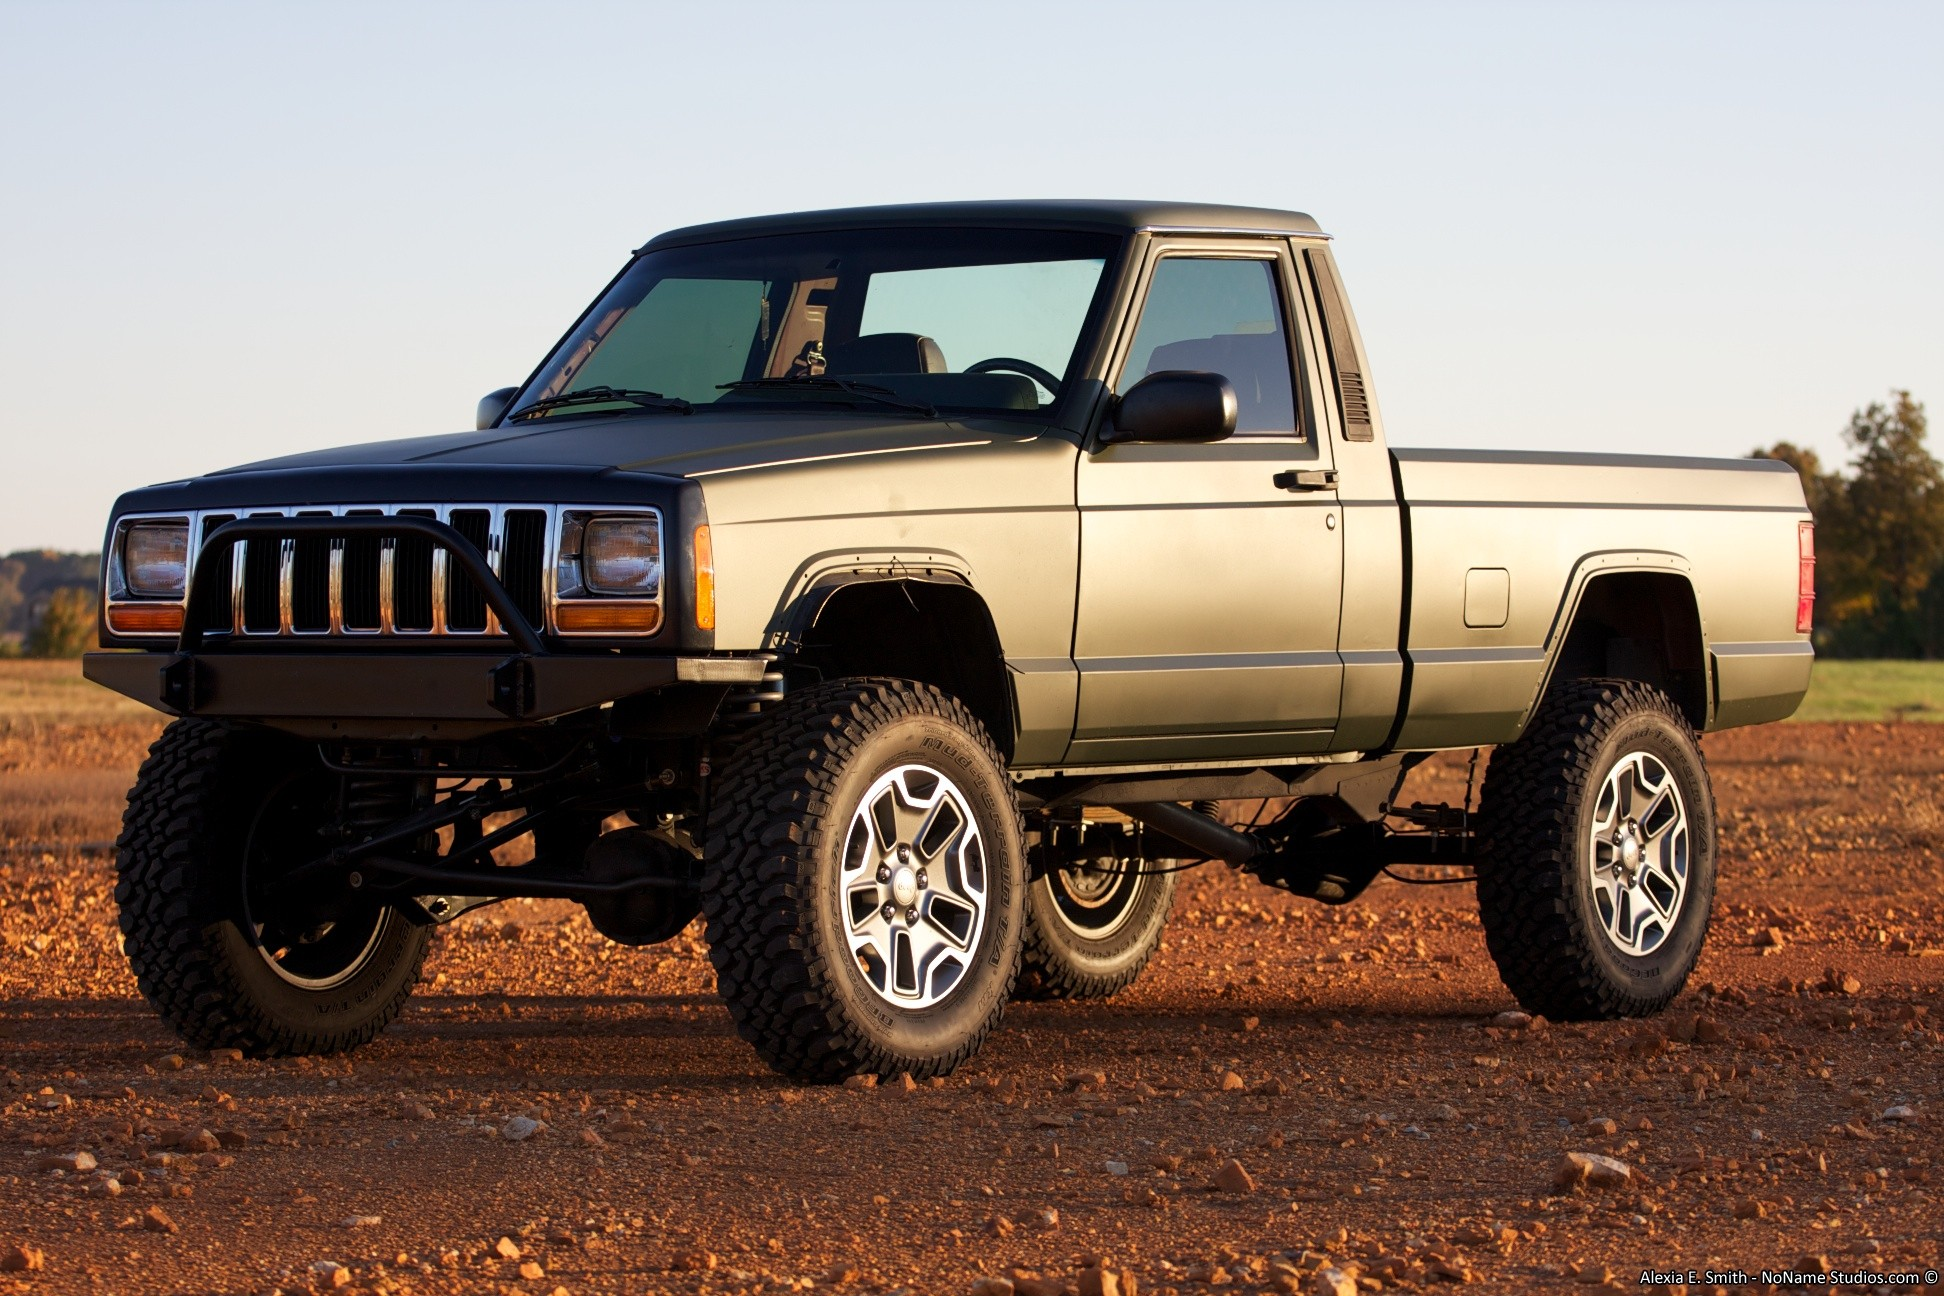 Vote for the 2013 JF Cherokee anche The Year takeII JeepForum